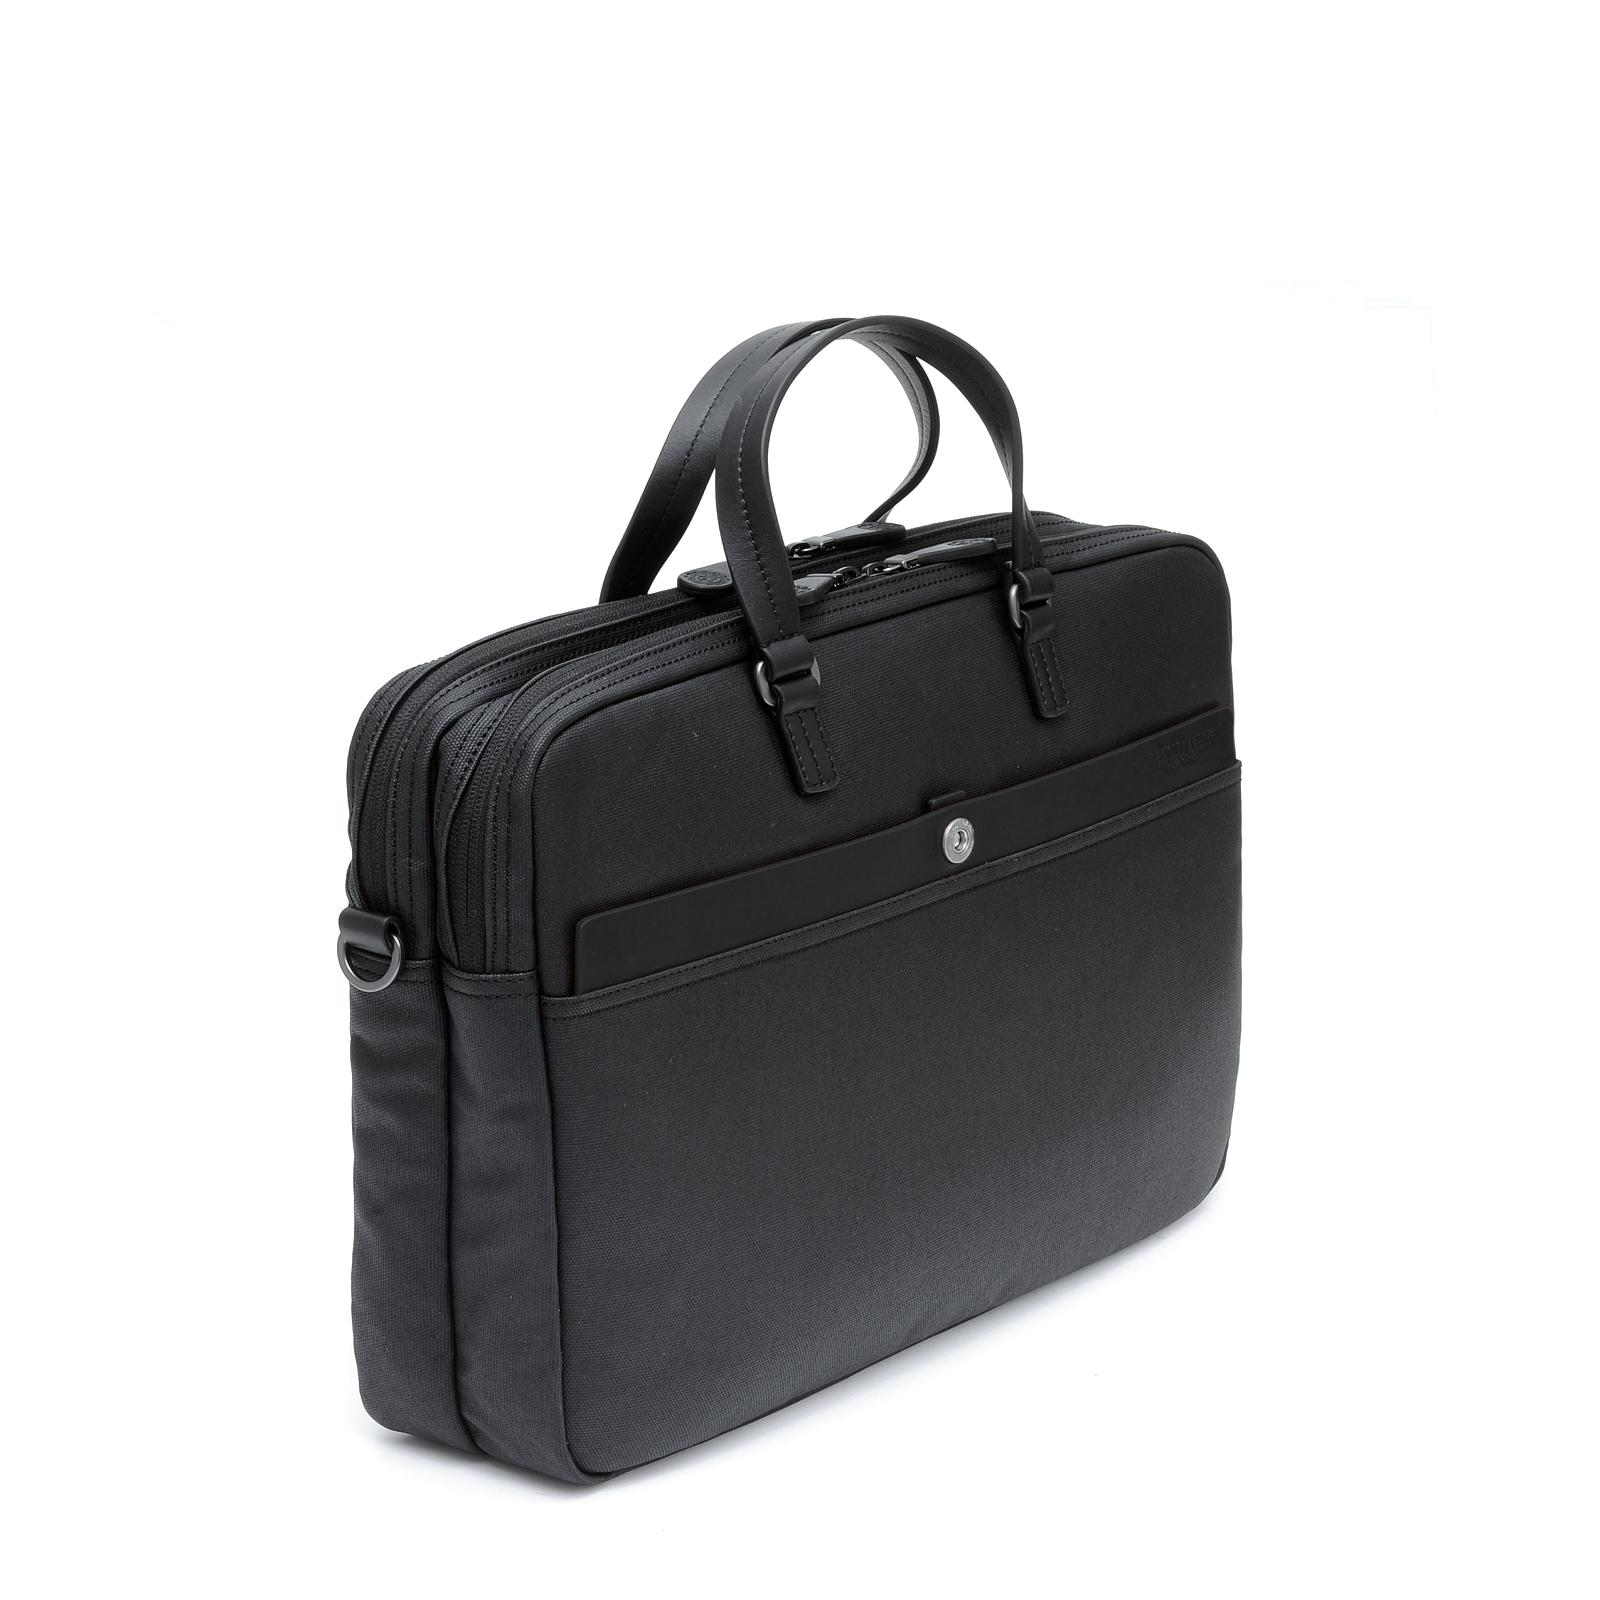 Cartable 2 Zip Matt Noir/Noir